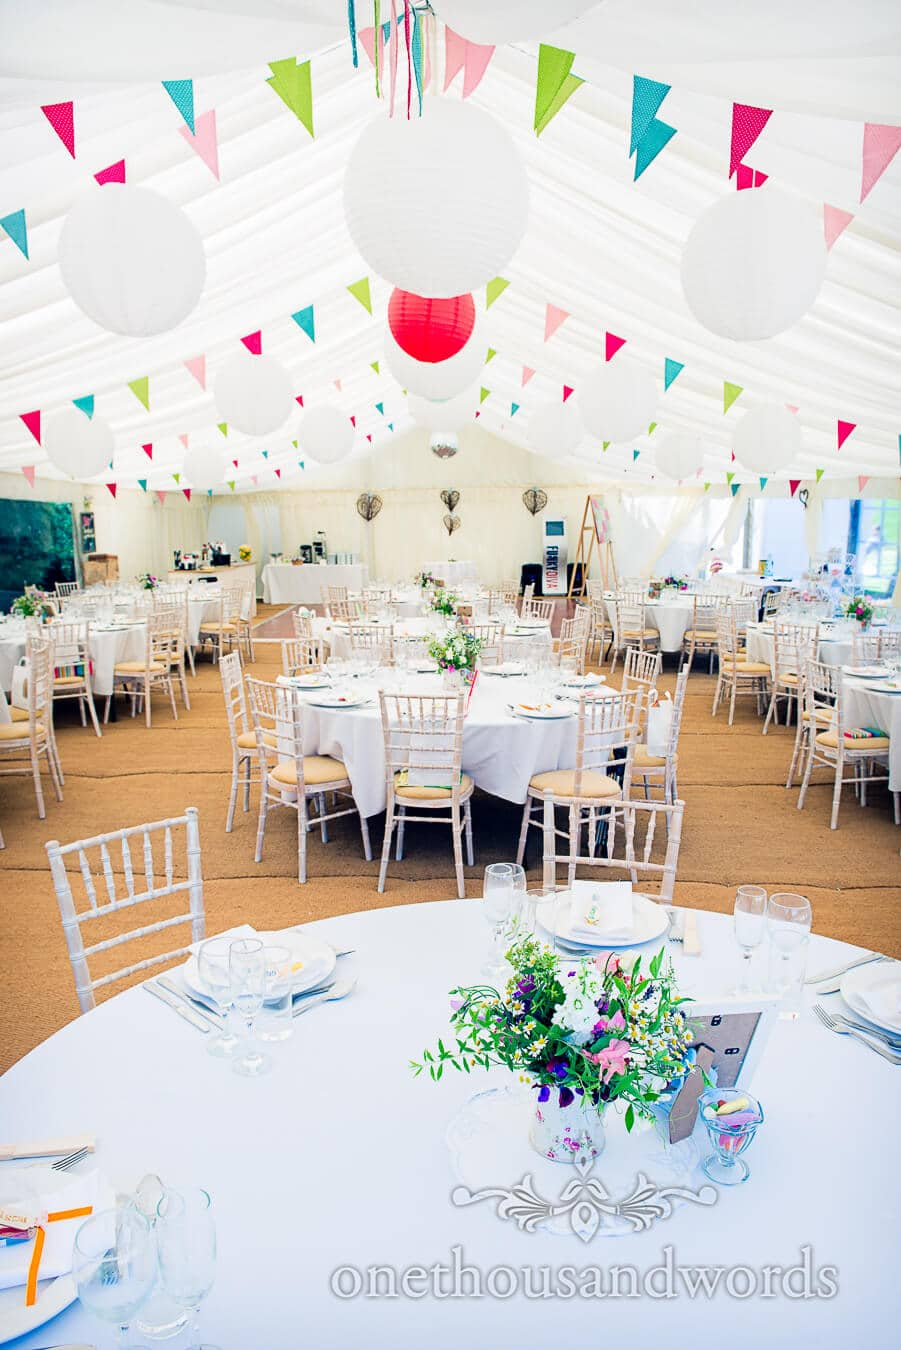 Wedding marquee with colourful wedding bunting